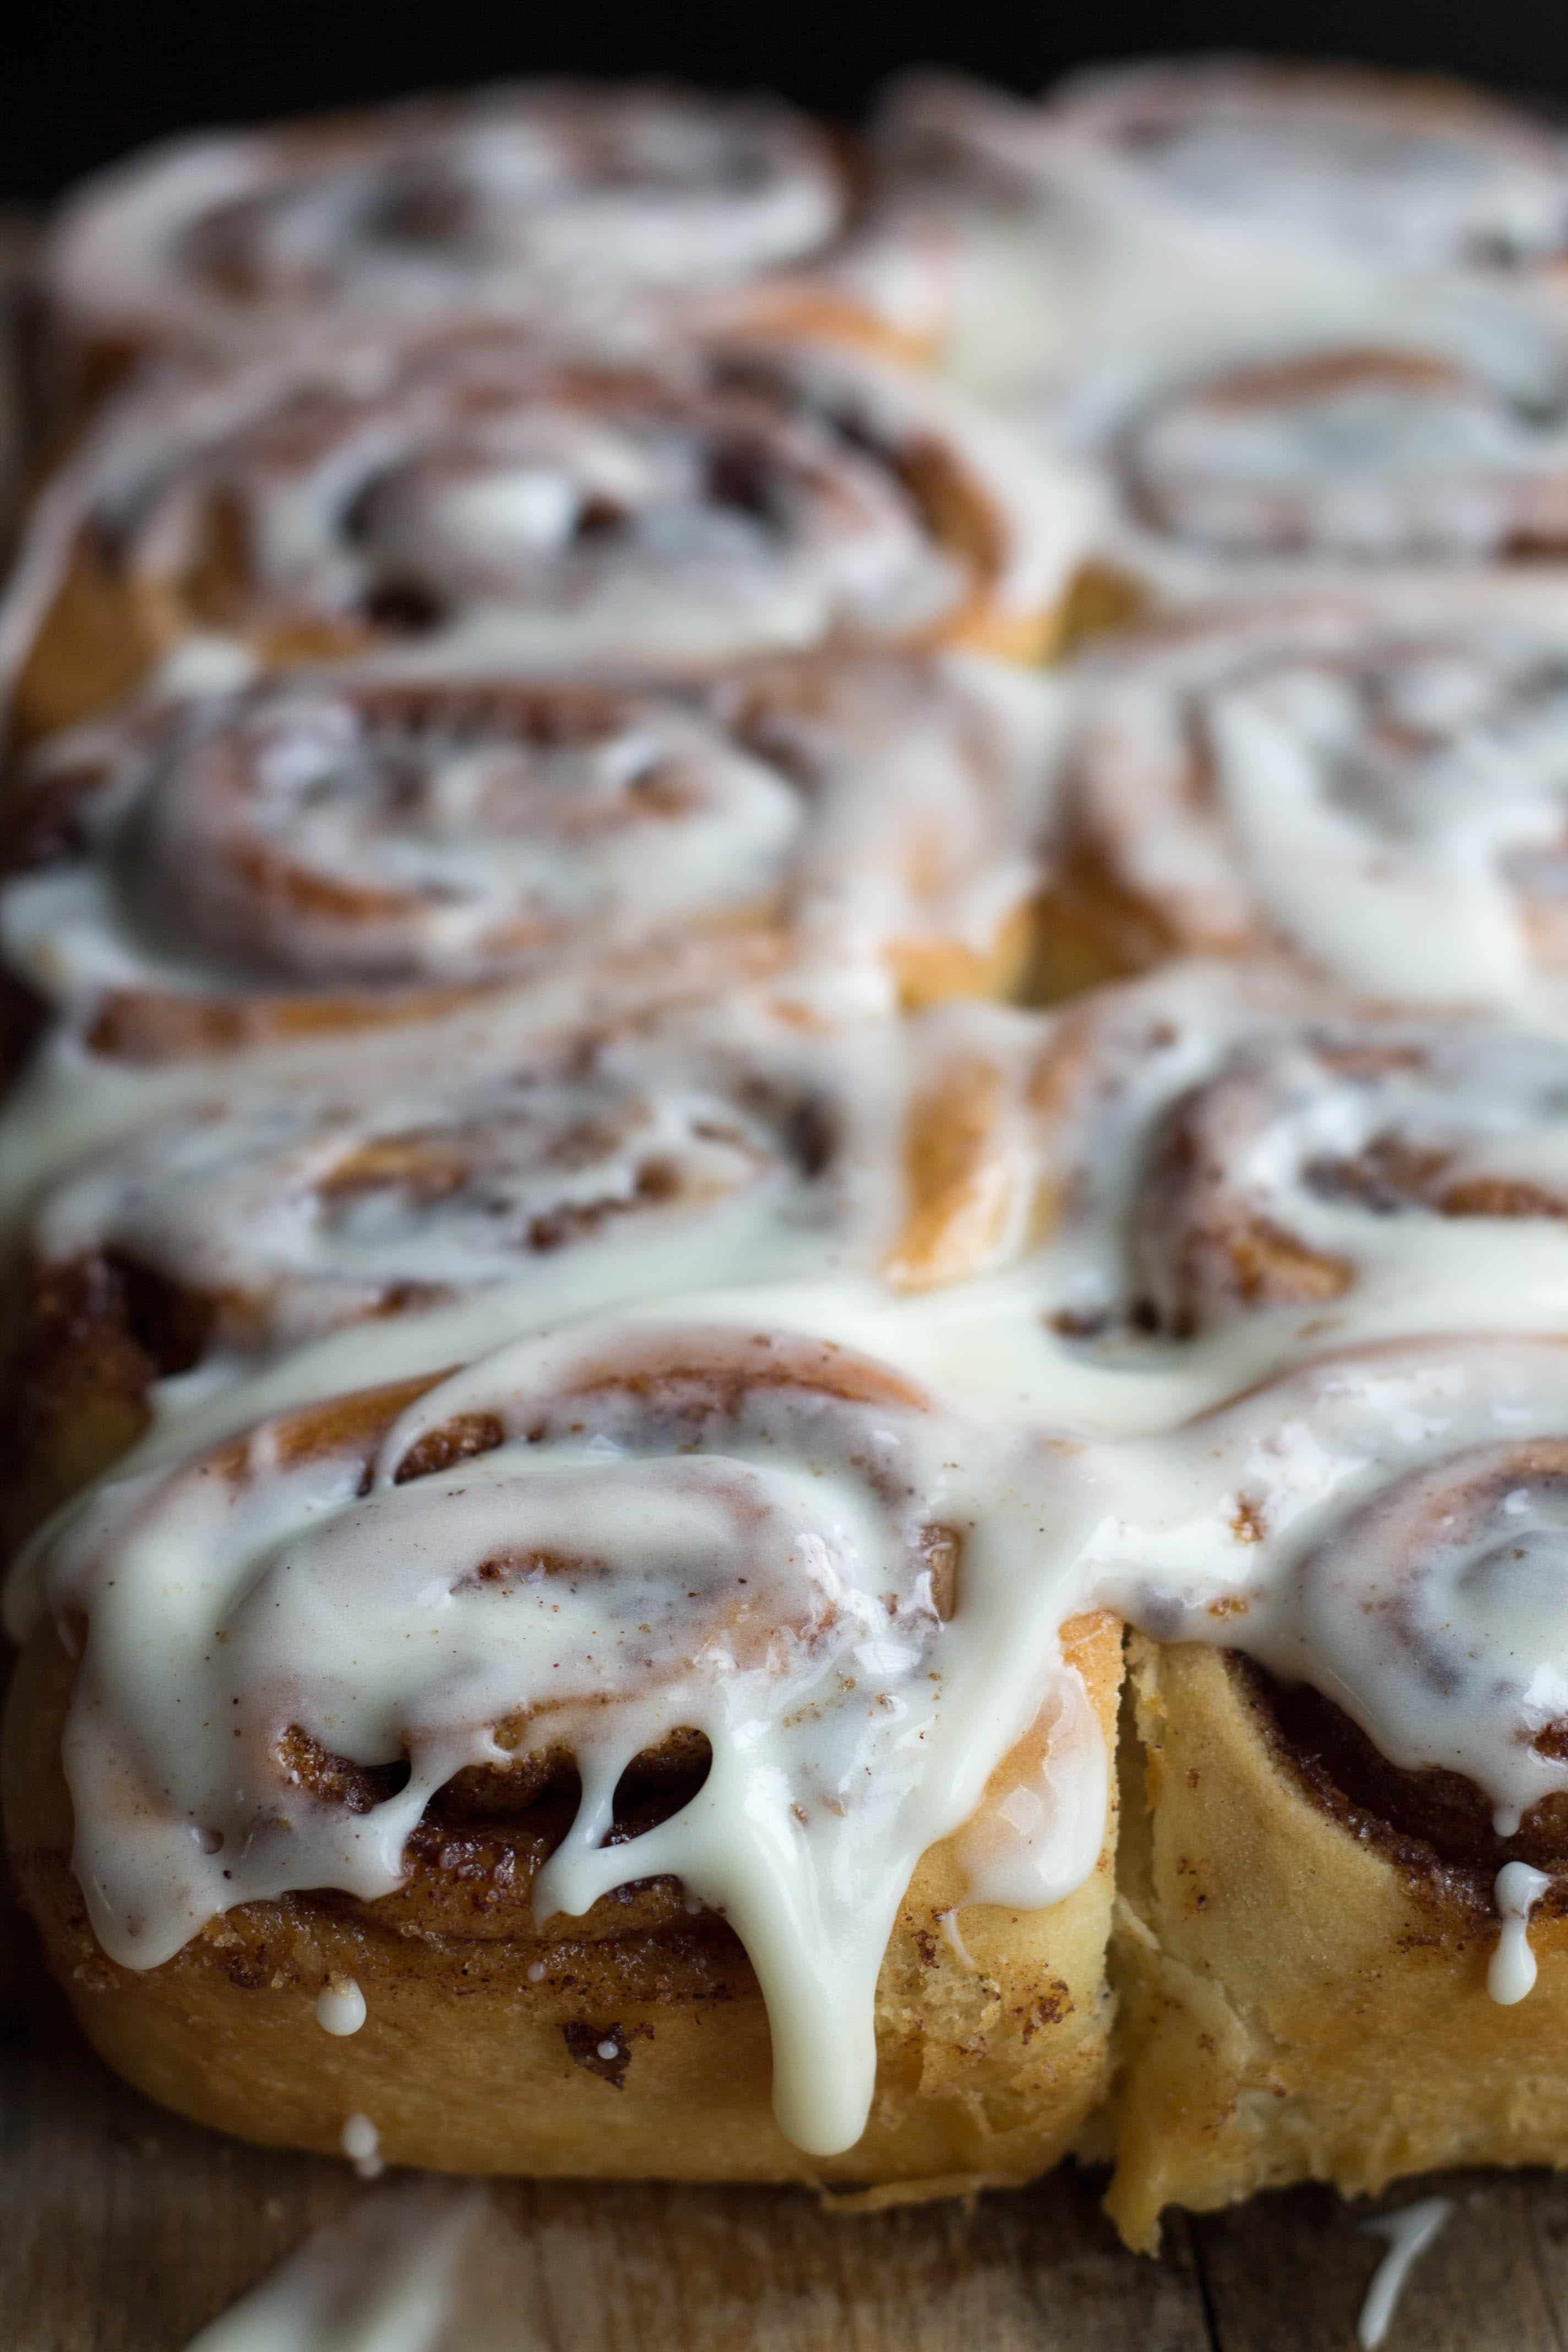 A close up of cinnamon buns with icing